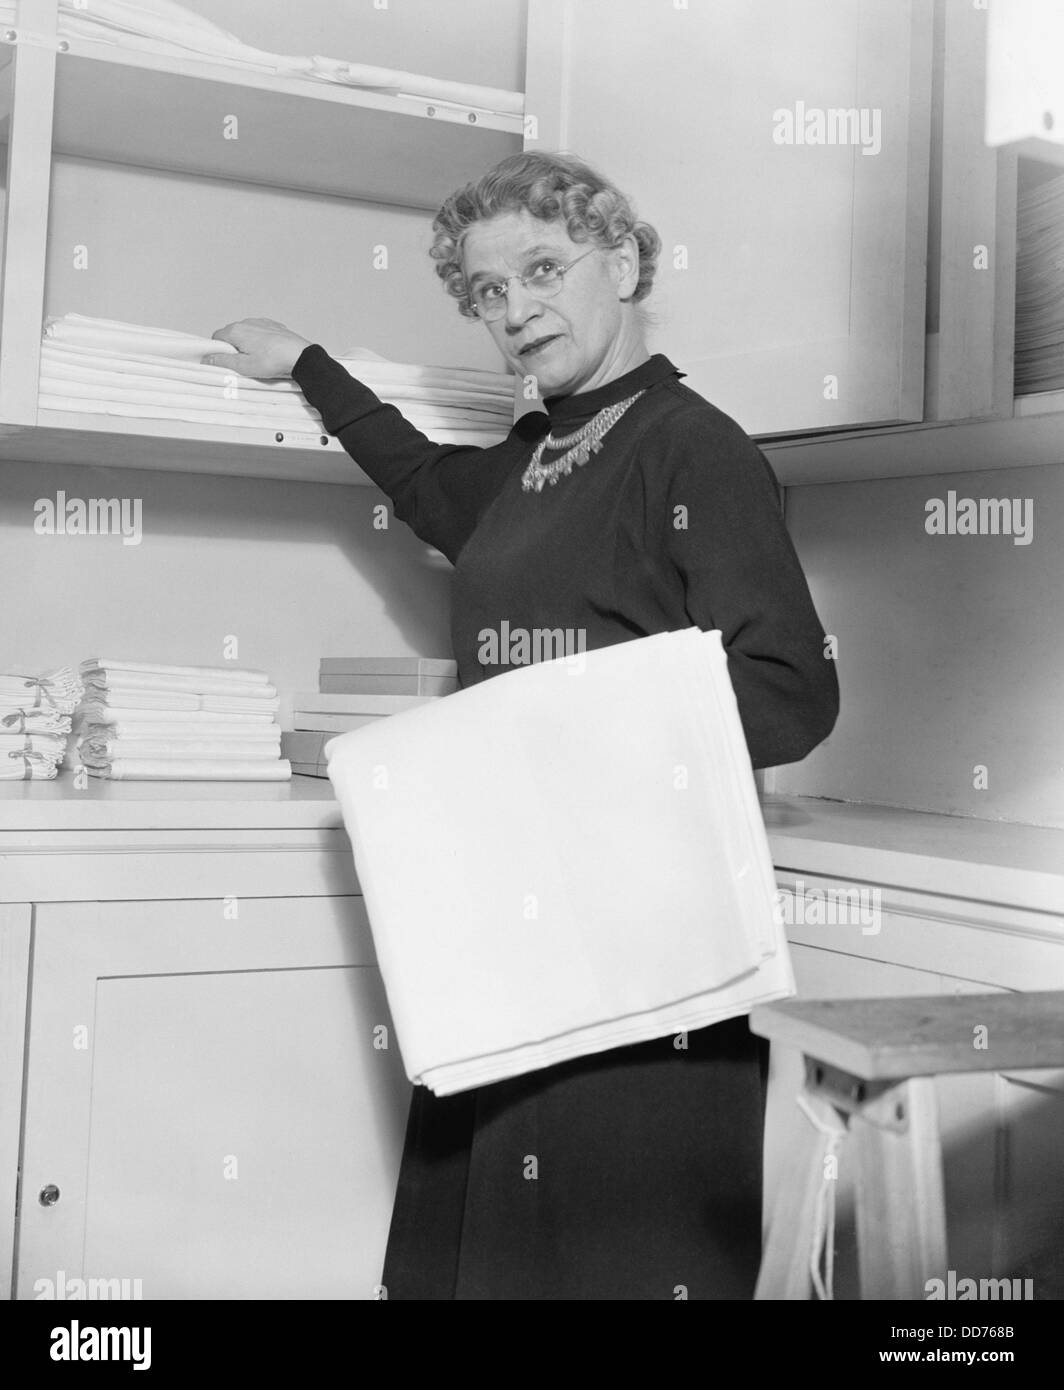 henrietta nesbitt housekeeper for the fdr white house her severe henrietta nesbitt housekeeper for the fdr white house her severe economy and lack of culinary skills resulted in boring food